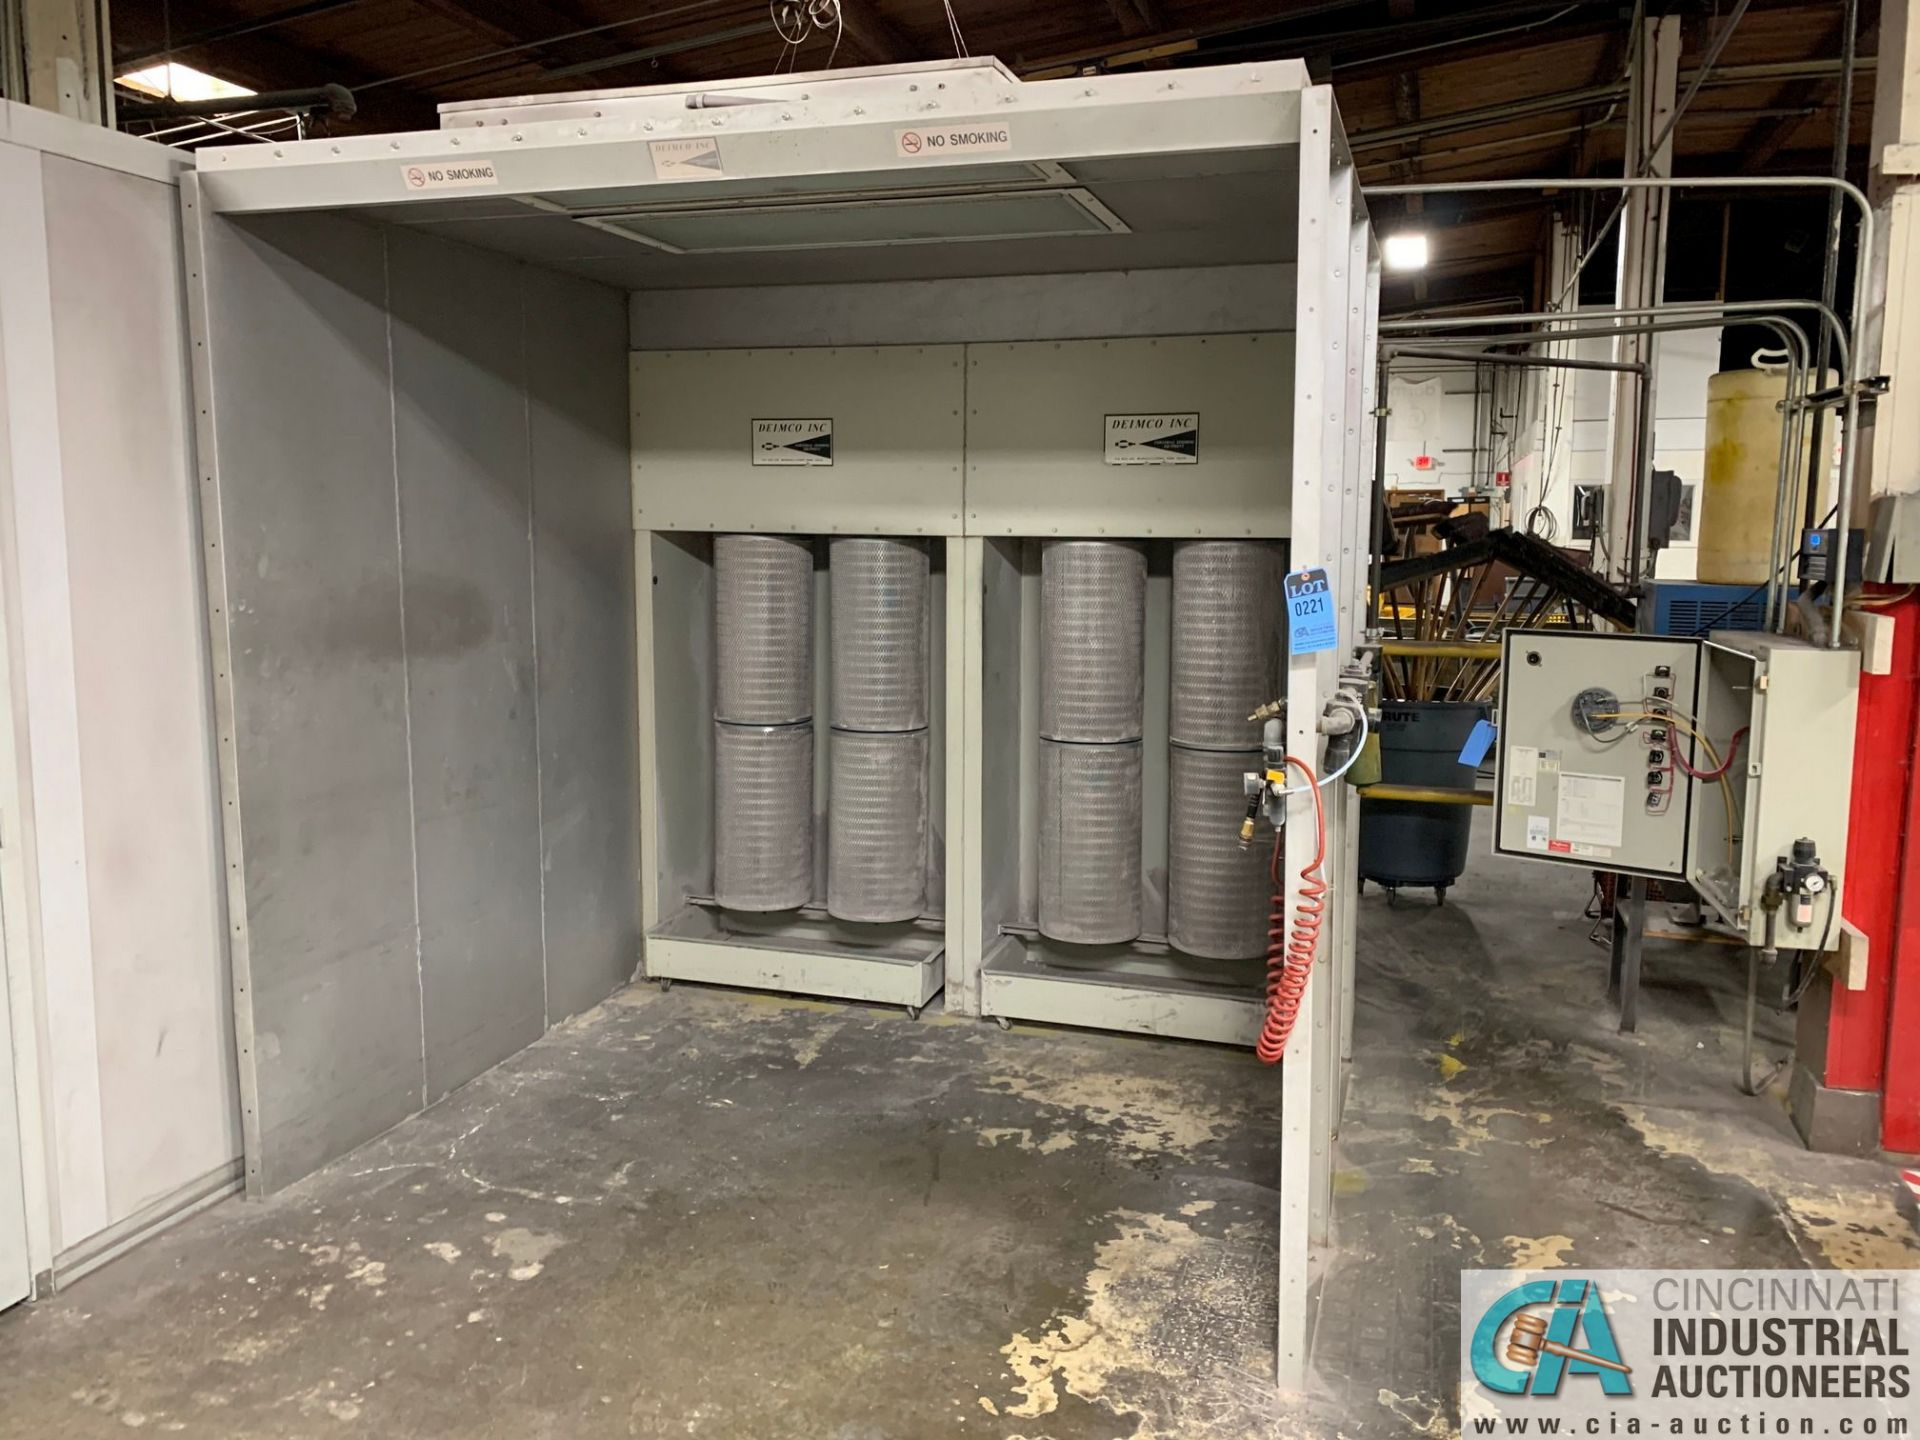 "8' X 6' X 90"" DEIMCO PWI-08-08-06-2-3K POWDER COAT BOOTH - Approx. $30,000 replacement cost - Image 2 of 11"